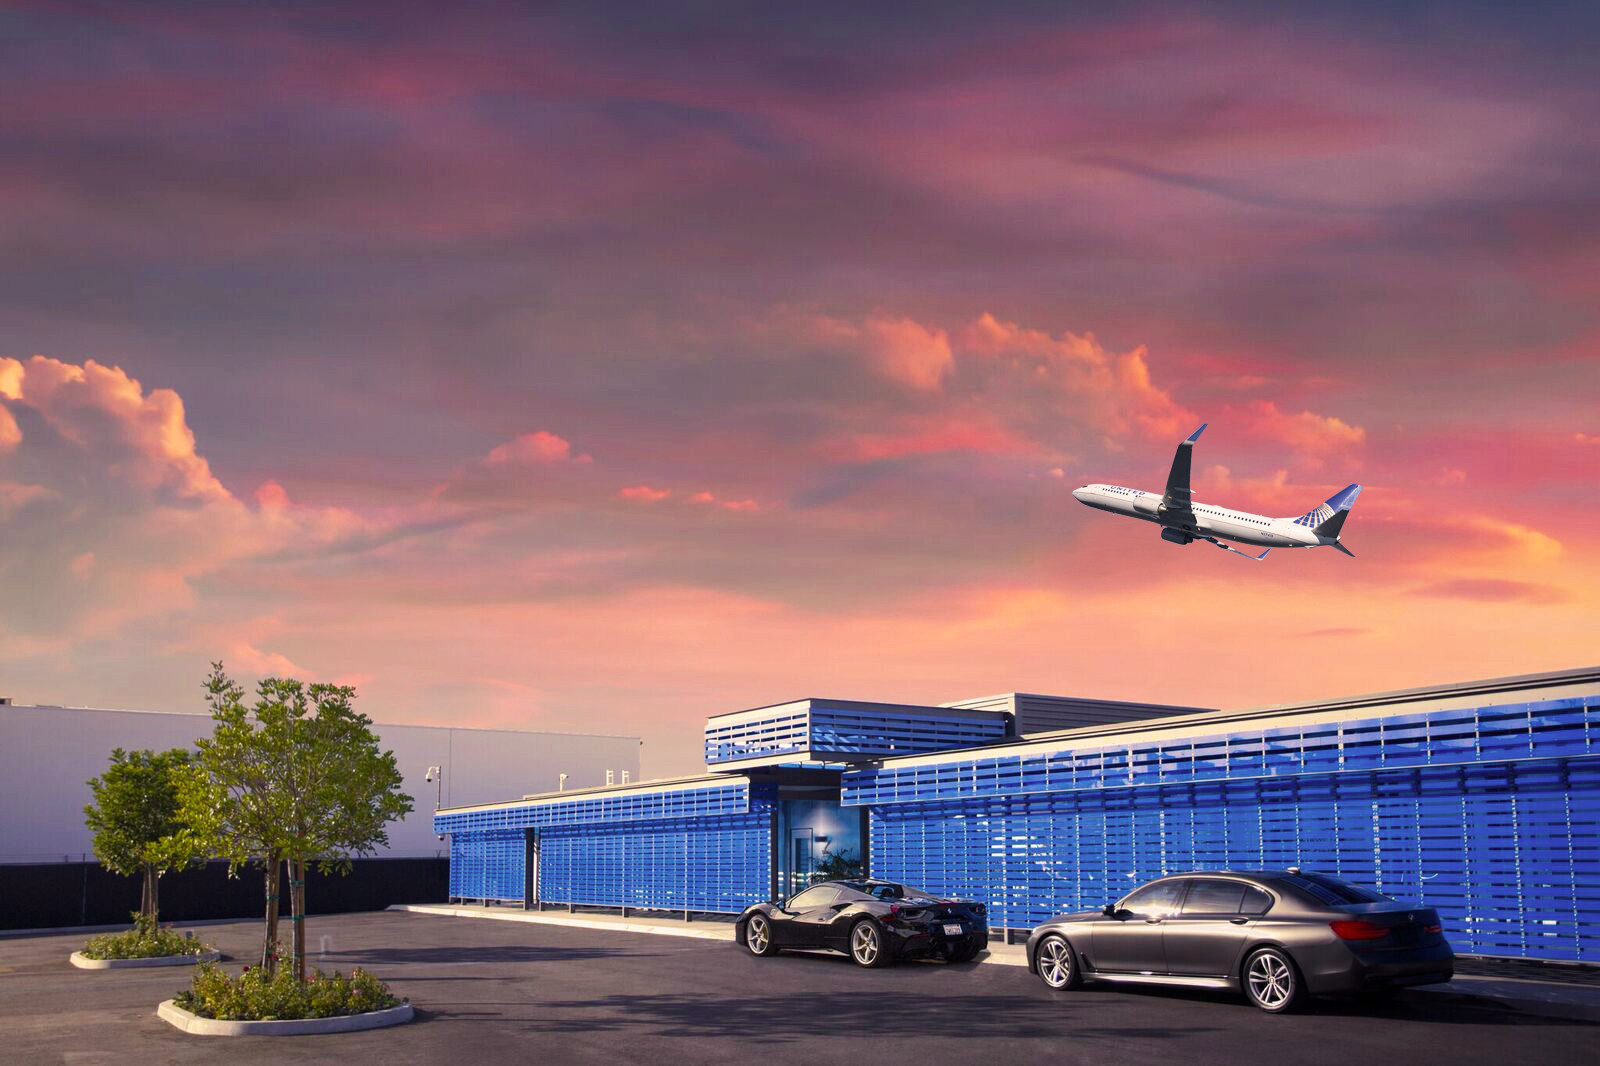 New private terminal at LAX grants luxury access for United passengers